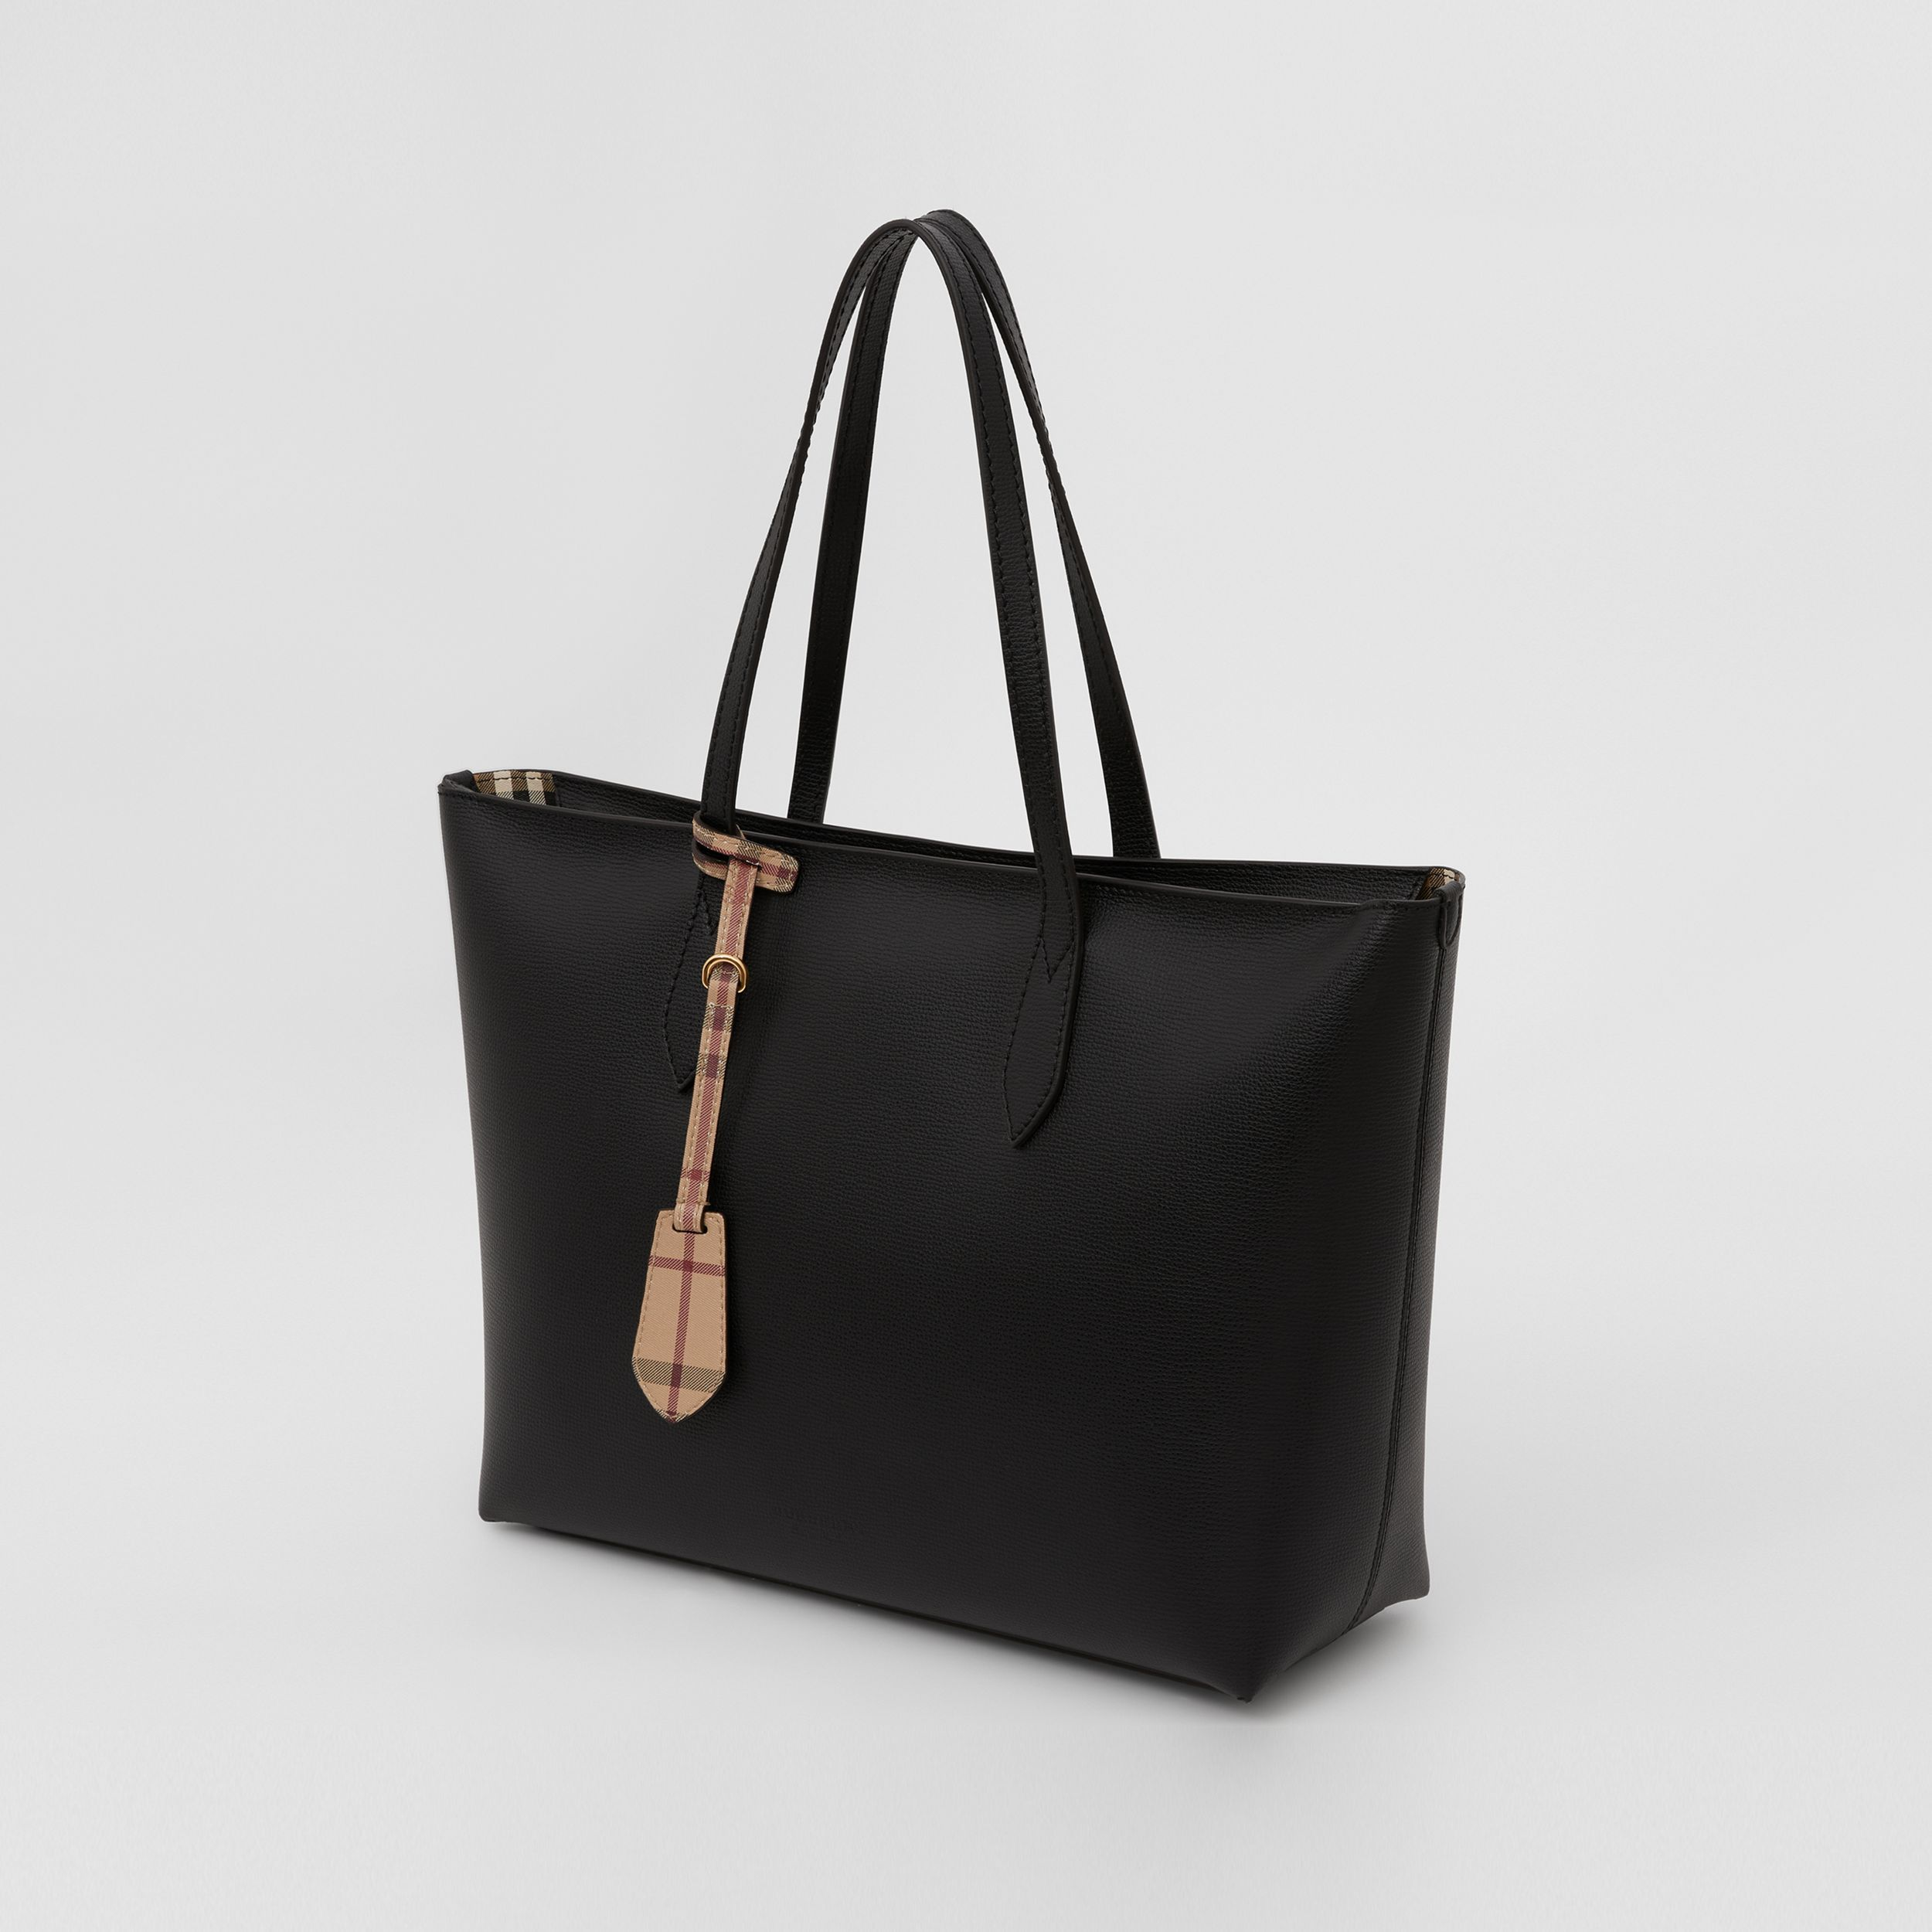 Medium Coated Leather Tote in Black - Women | Burberry - 3